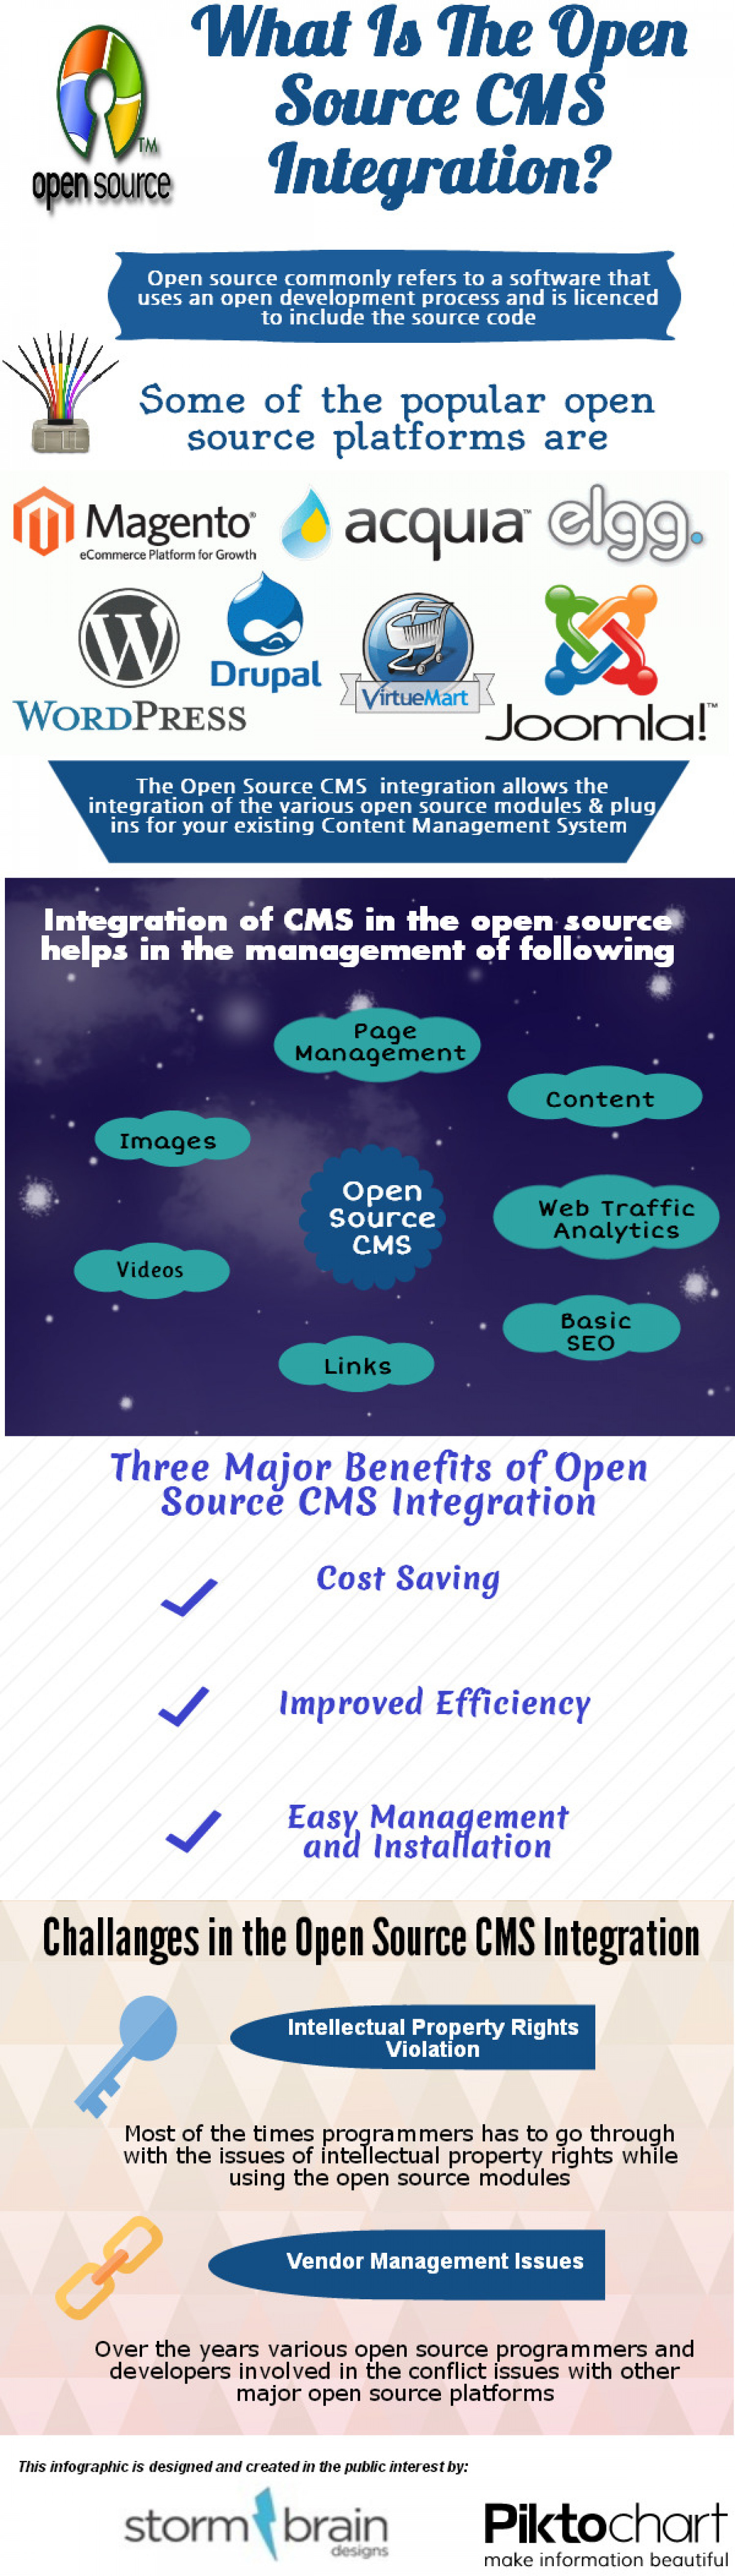 What is the open source CMS integration? Infographic